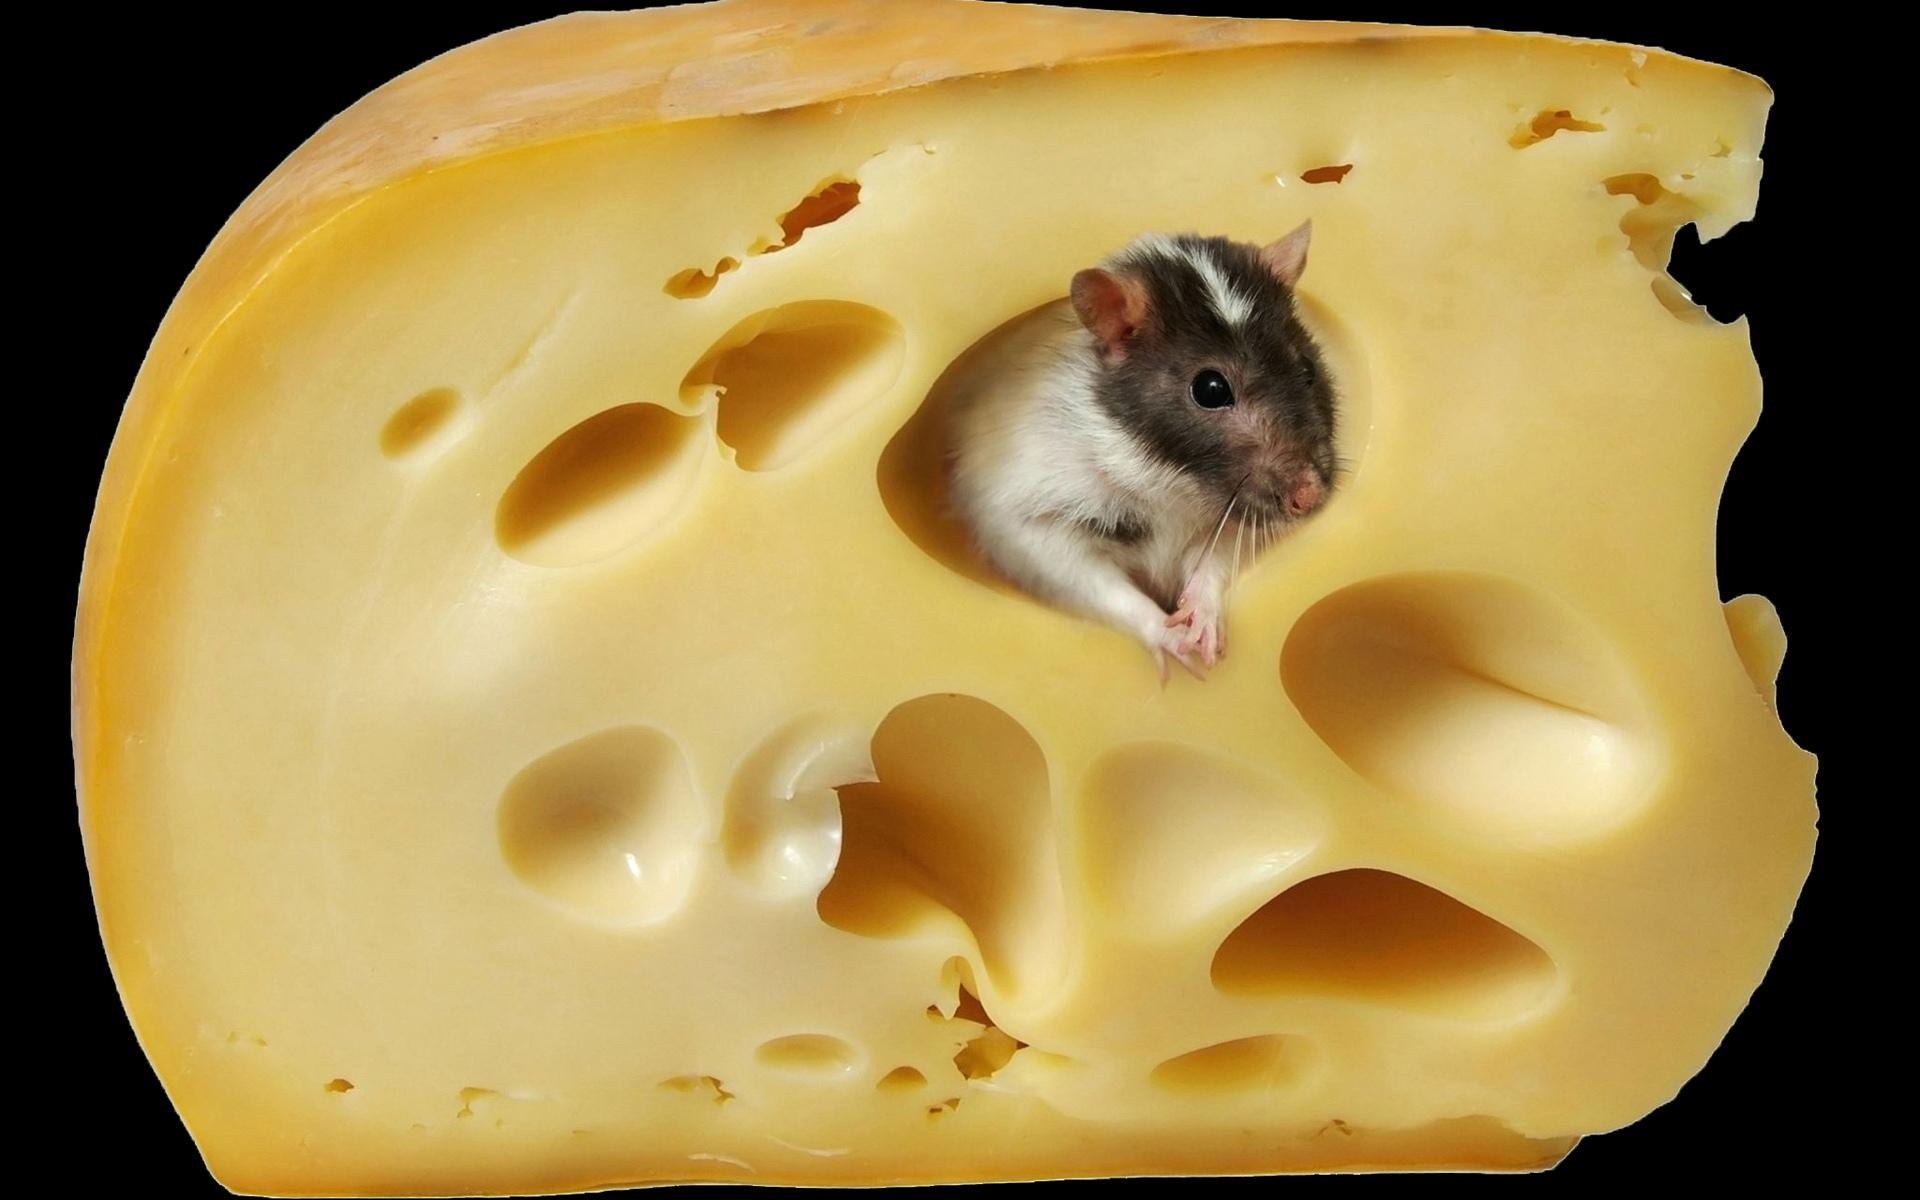 Cheese wallpapers HD quality